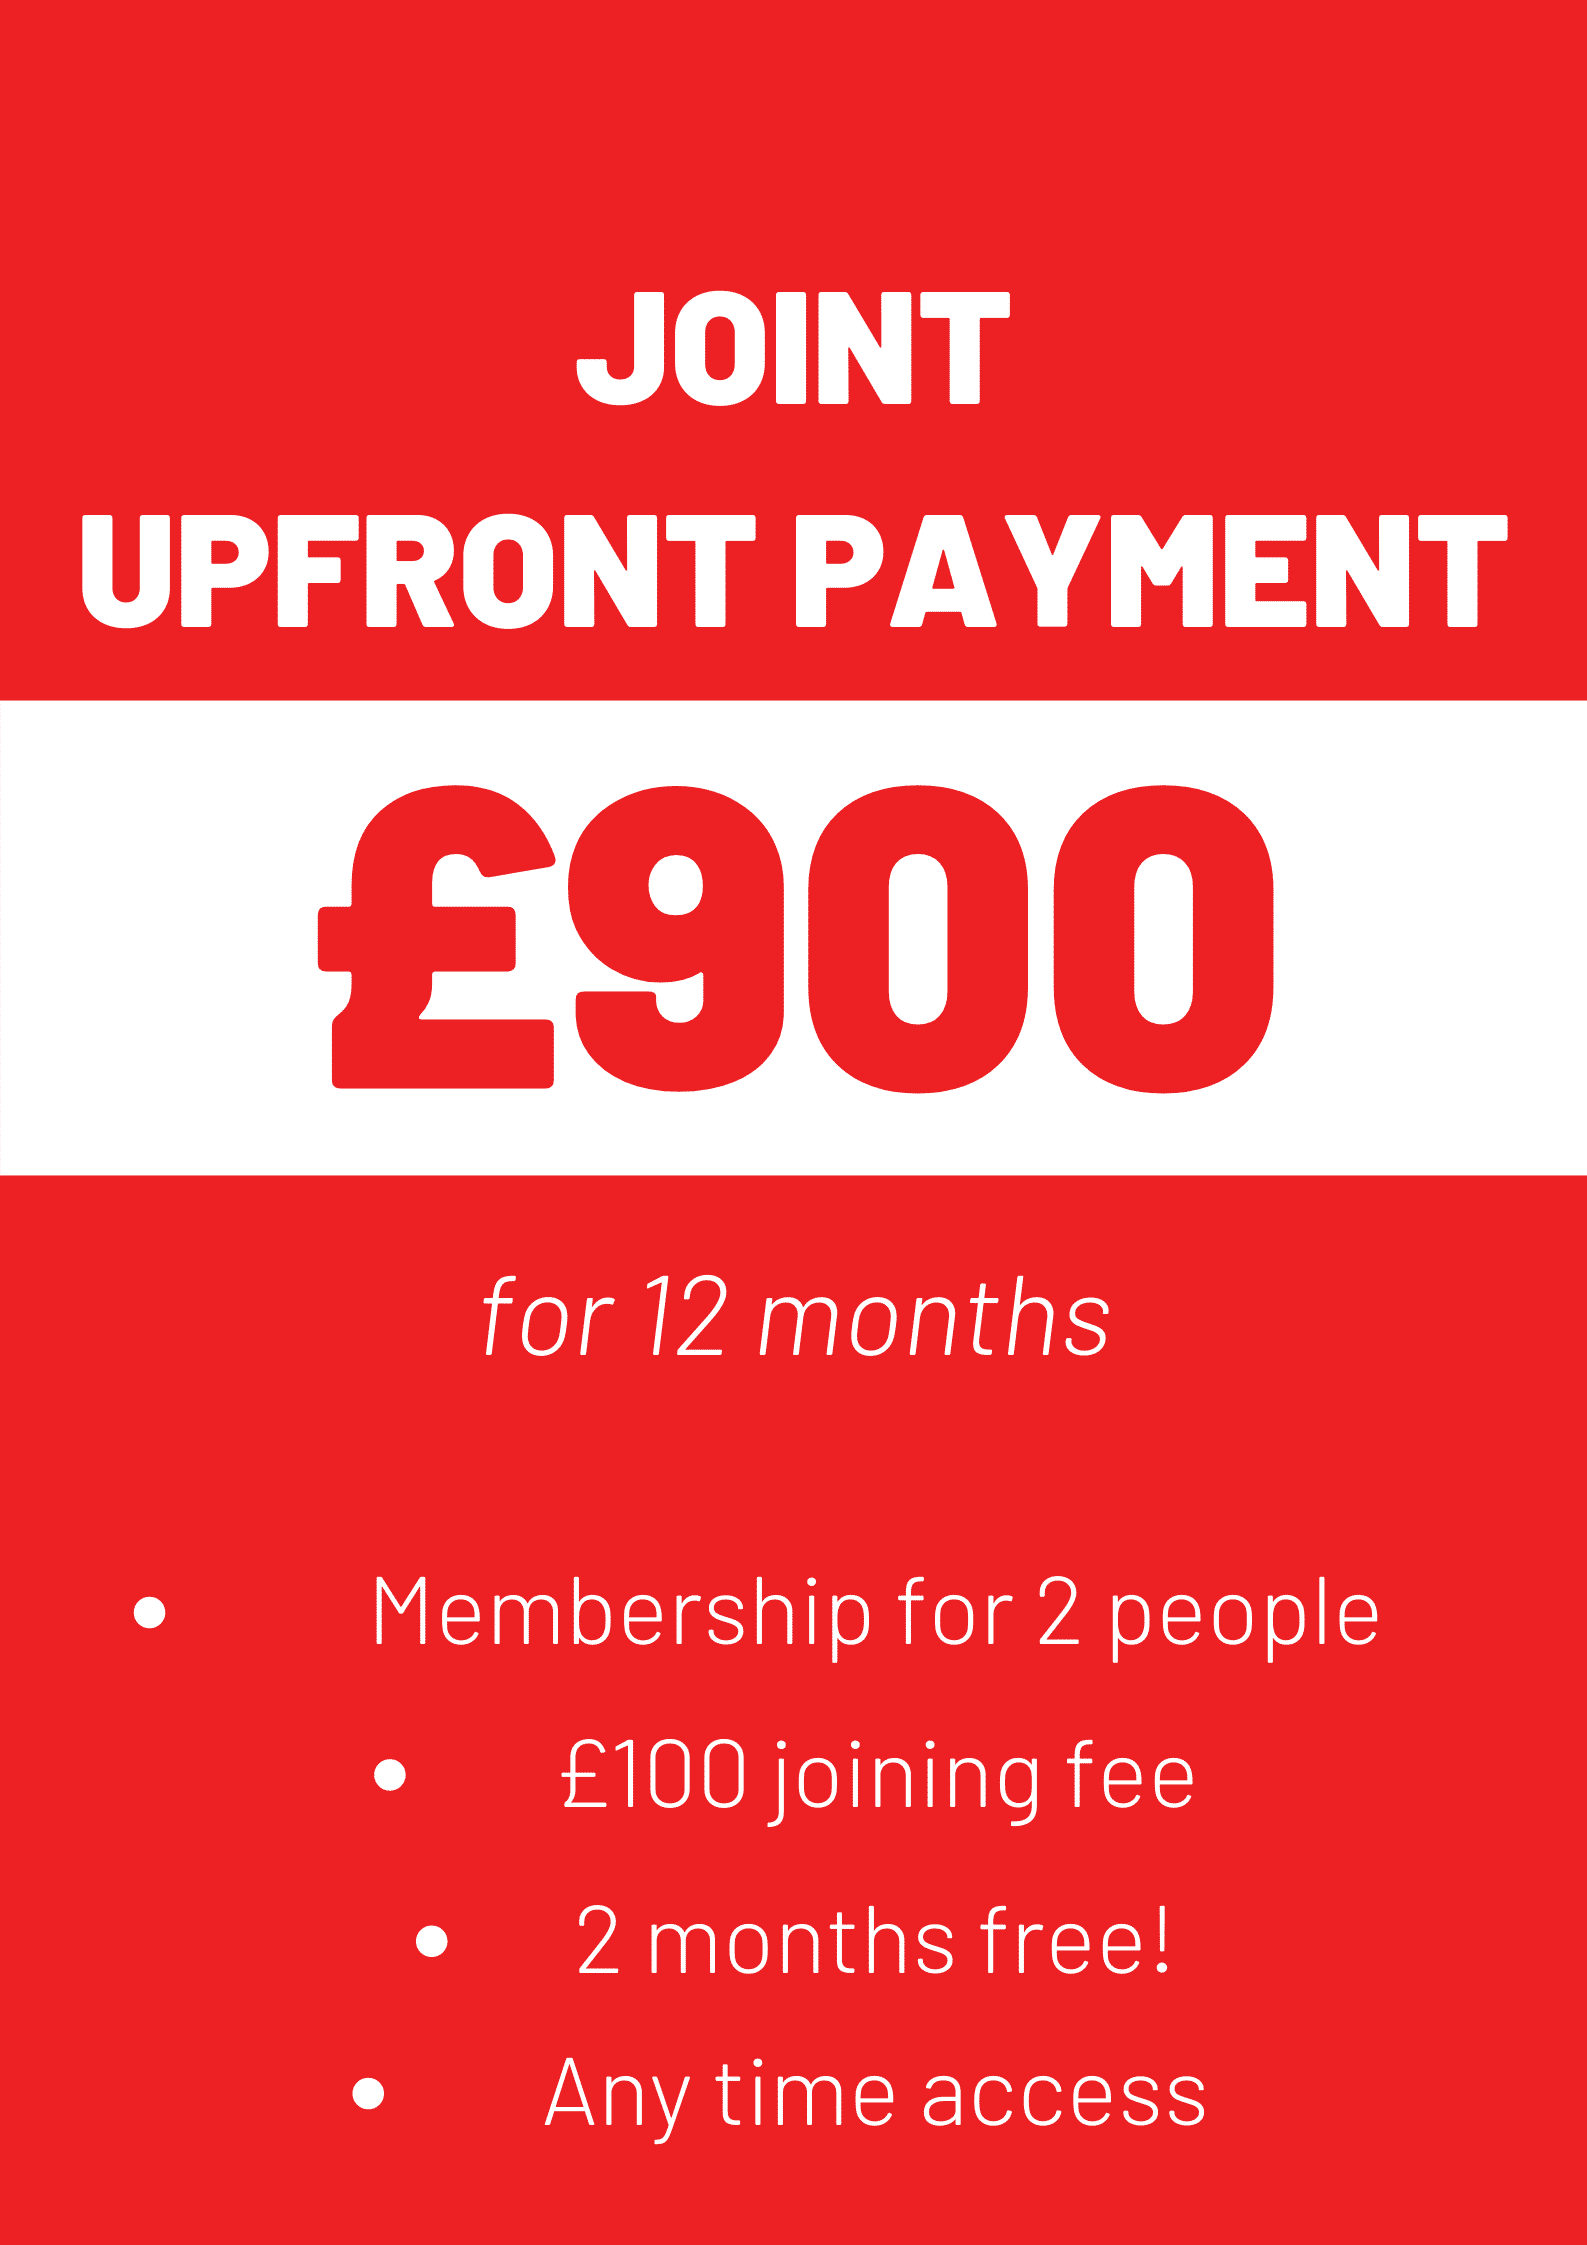 Joint Upfront Payment